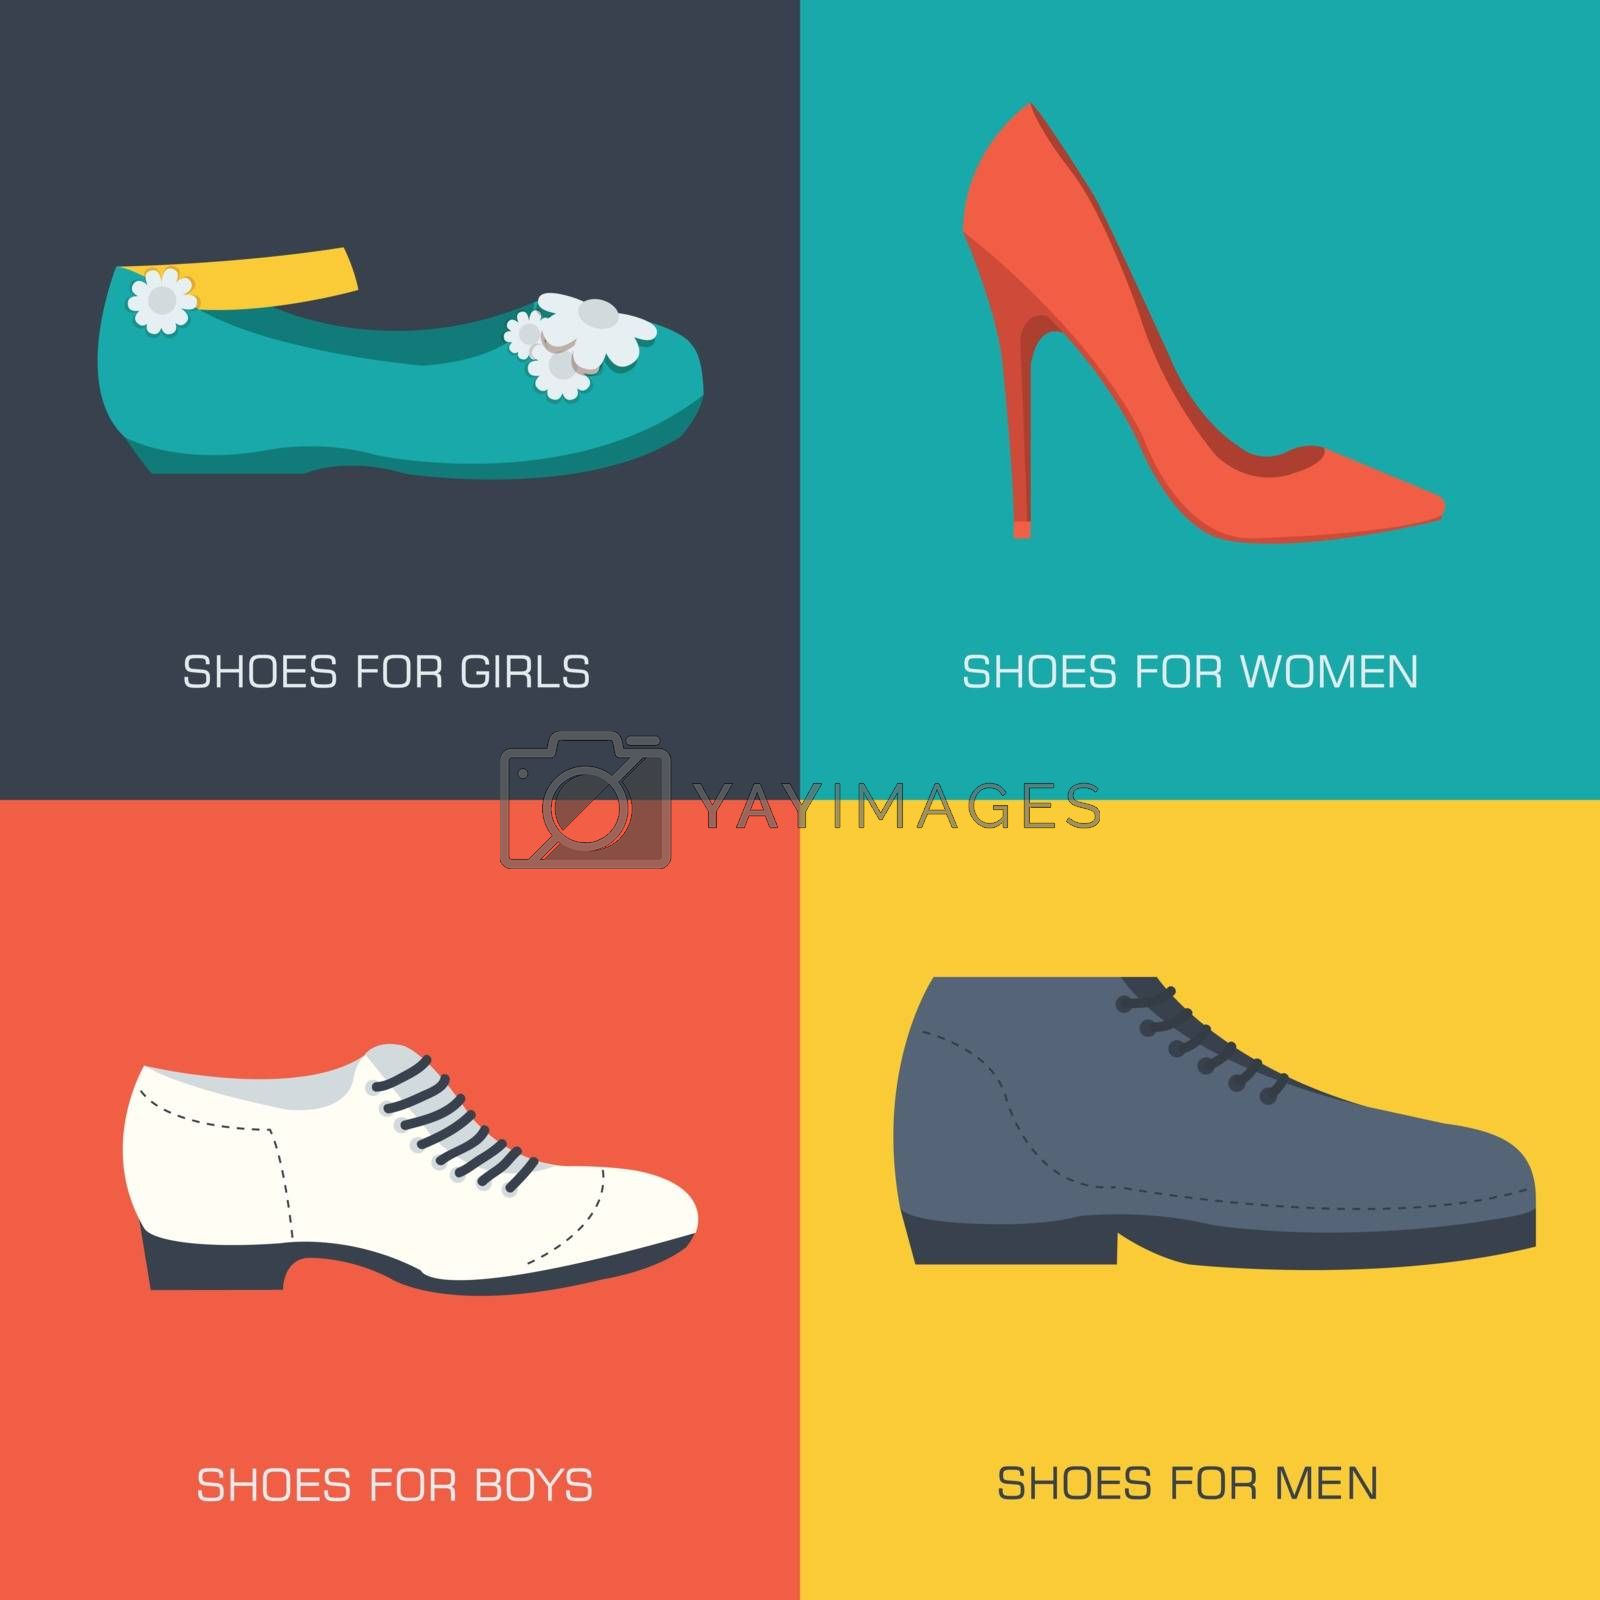 fashion shoes for family on flat style. Vector illustration concept banners